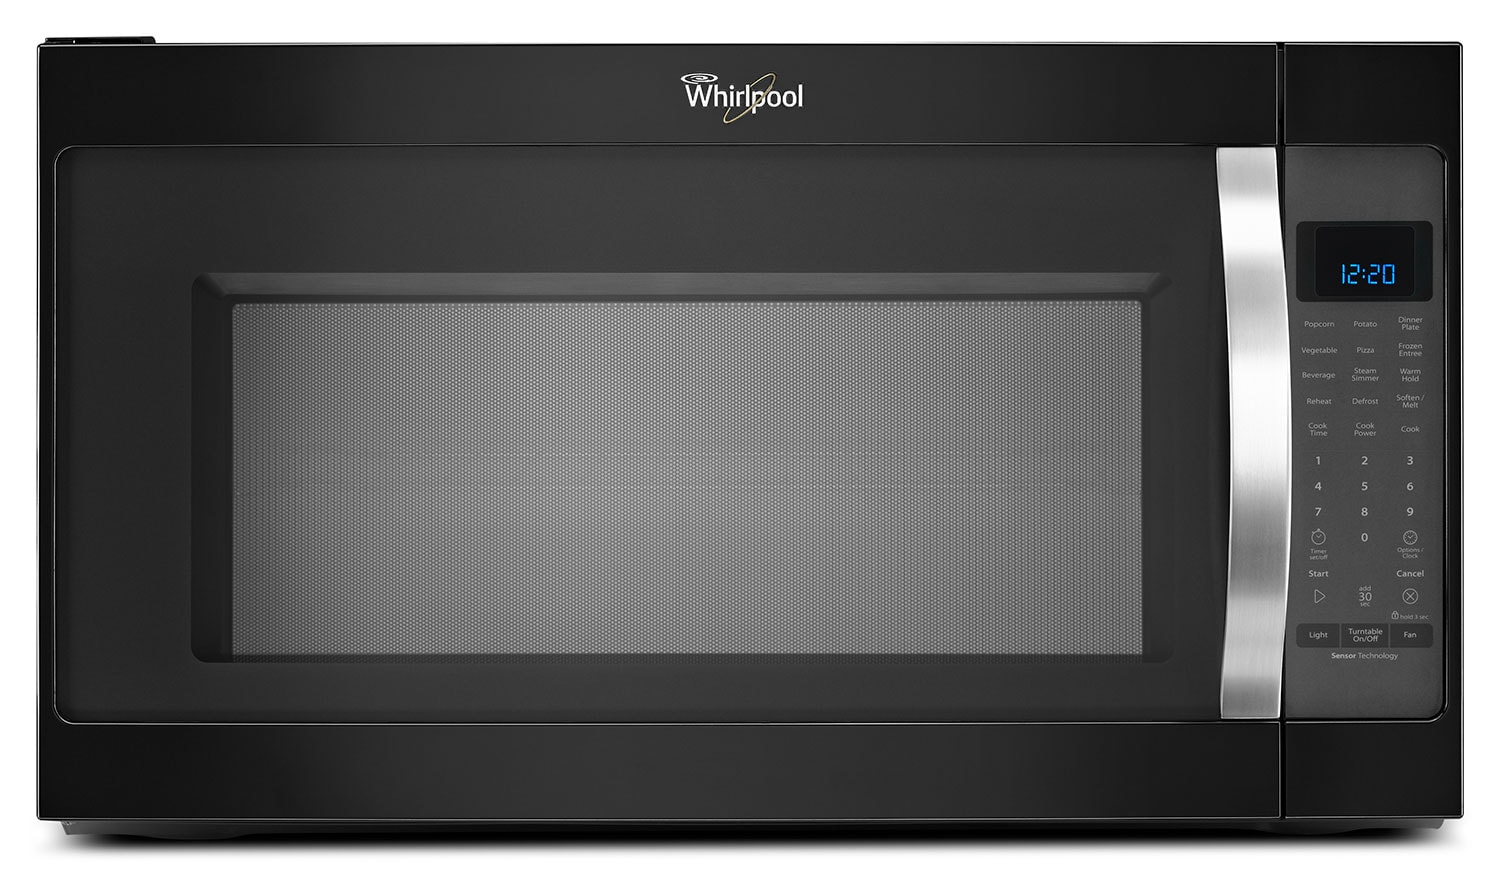 Whirlpool Black Over-the-Range Microwave (2.0 Cu. Ft.) - YWMH53520CB